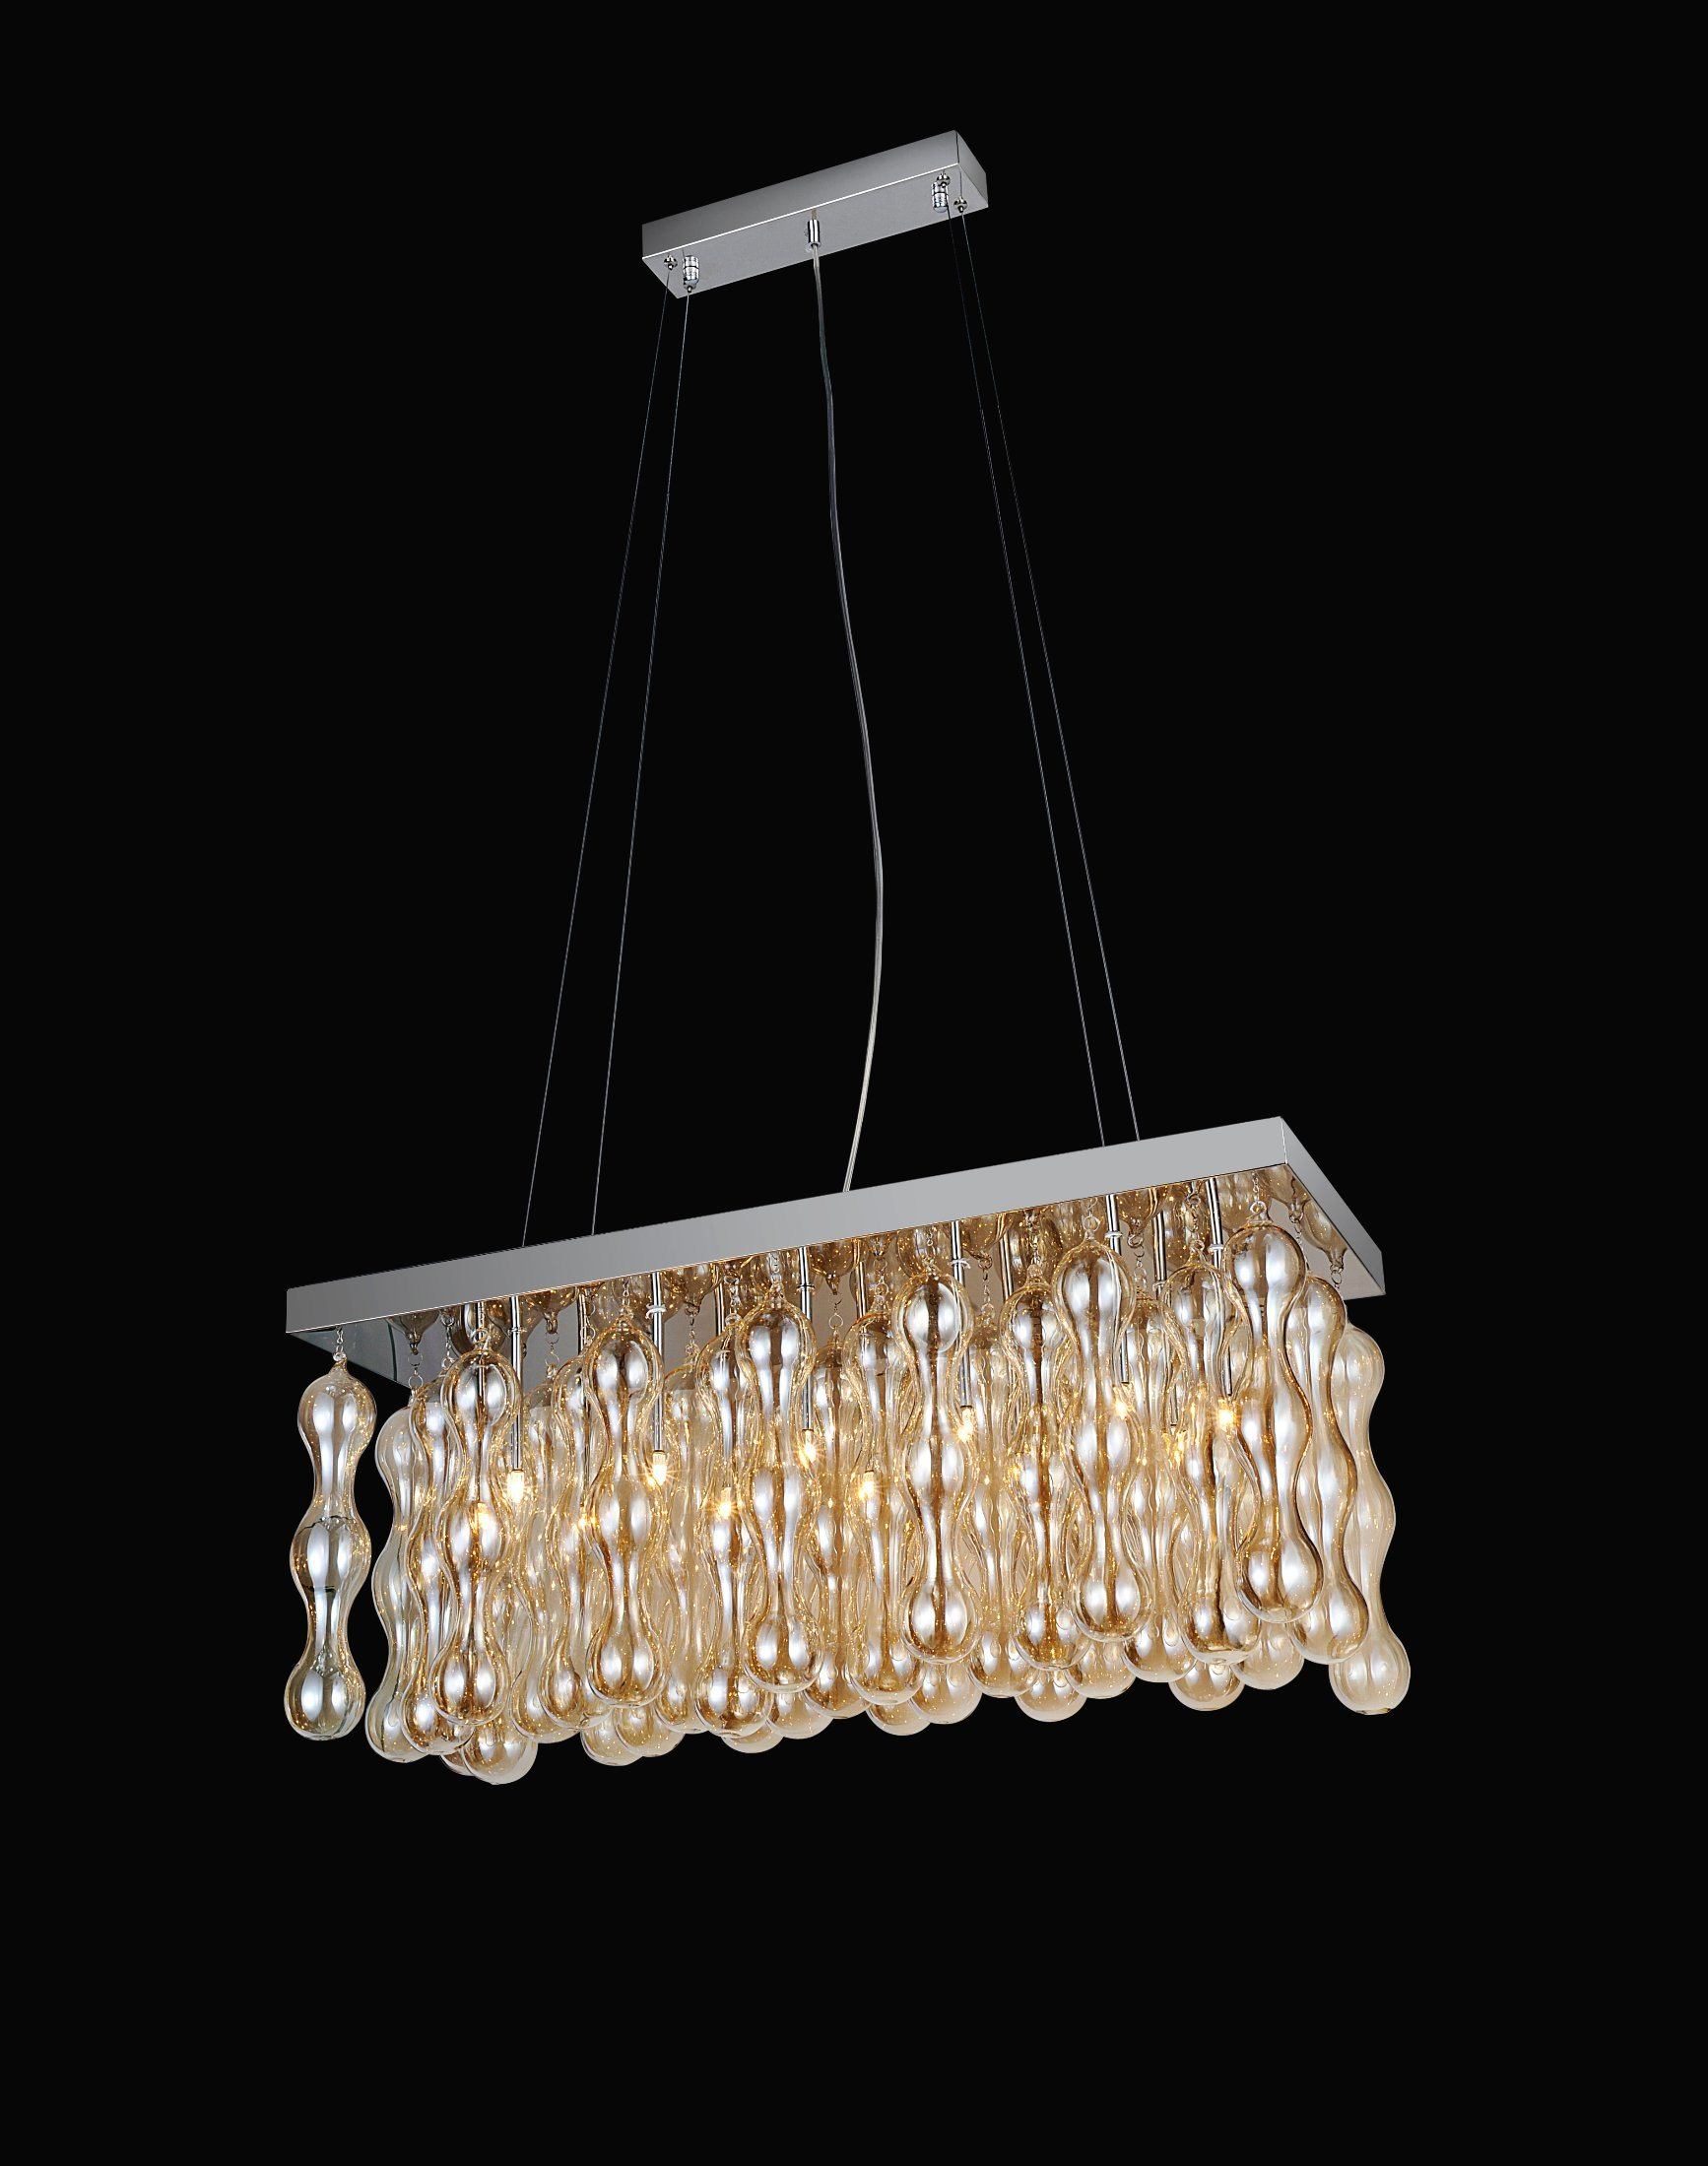 Crystal chandelier manufacturer in china chandelier designs crystal chandelier manufacturer in china designs arubaitofo Choice Image